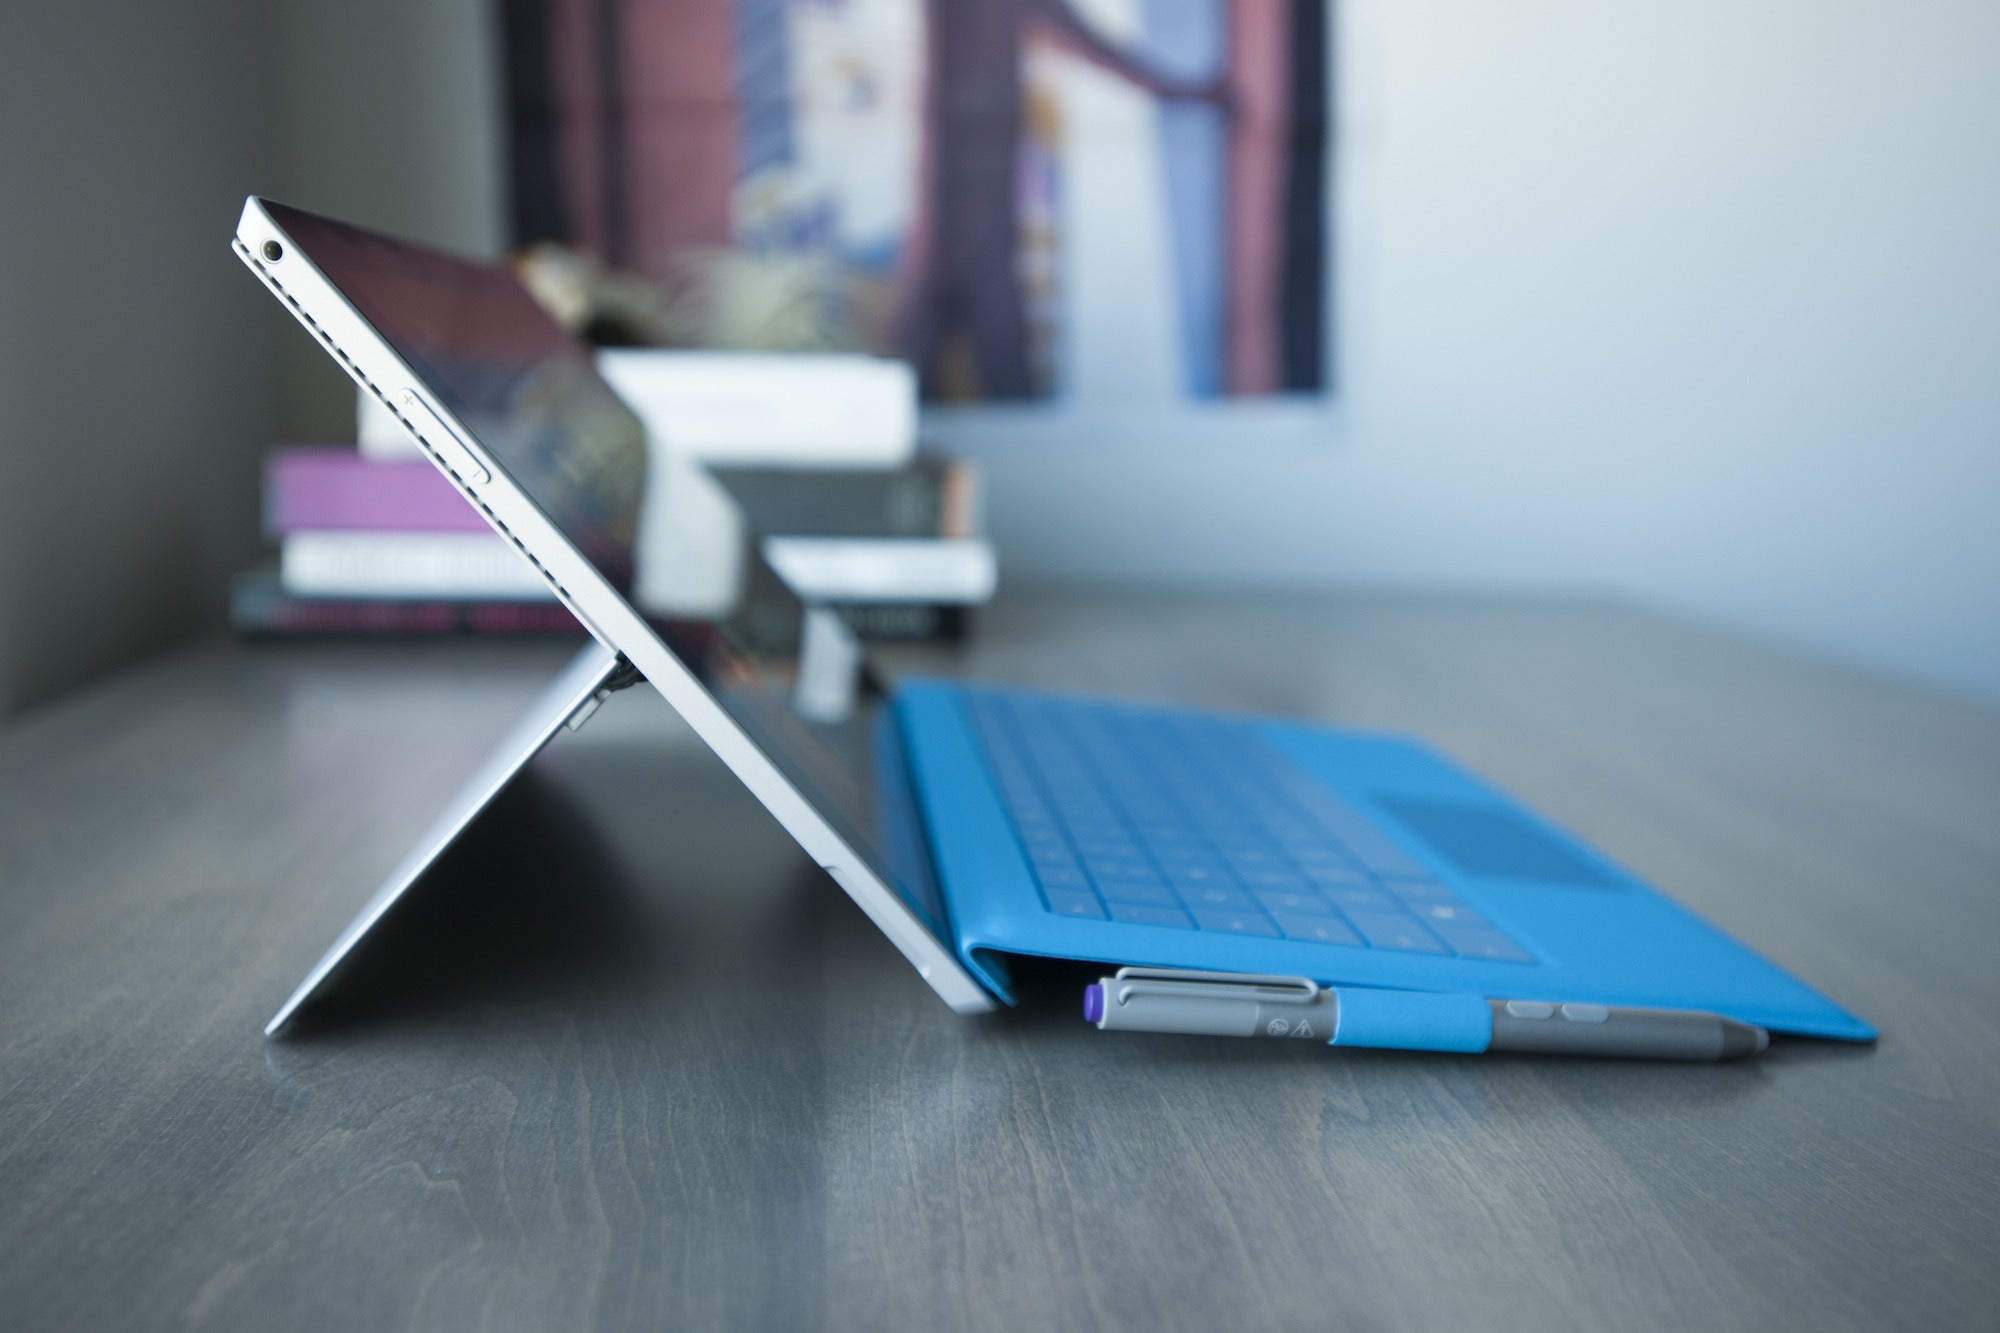 Microsoft Surface Pro 3 Review A Legitimate Work Pc In Tablet 4 Core I7 8gb 256gb